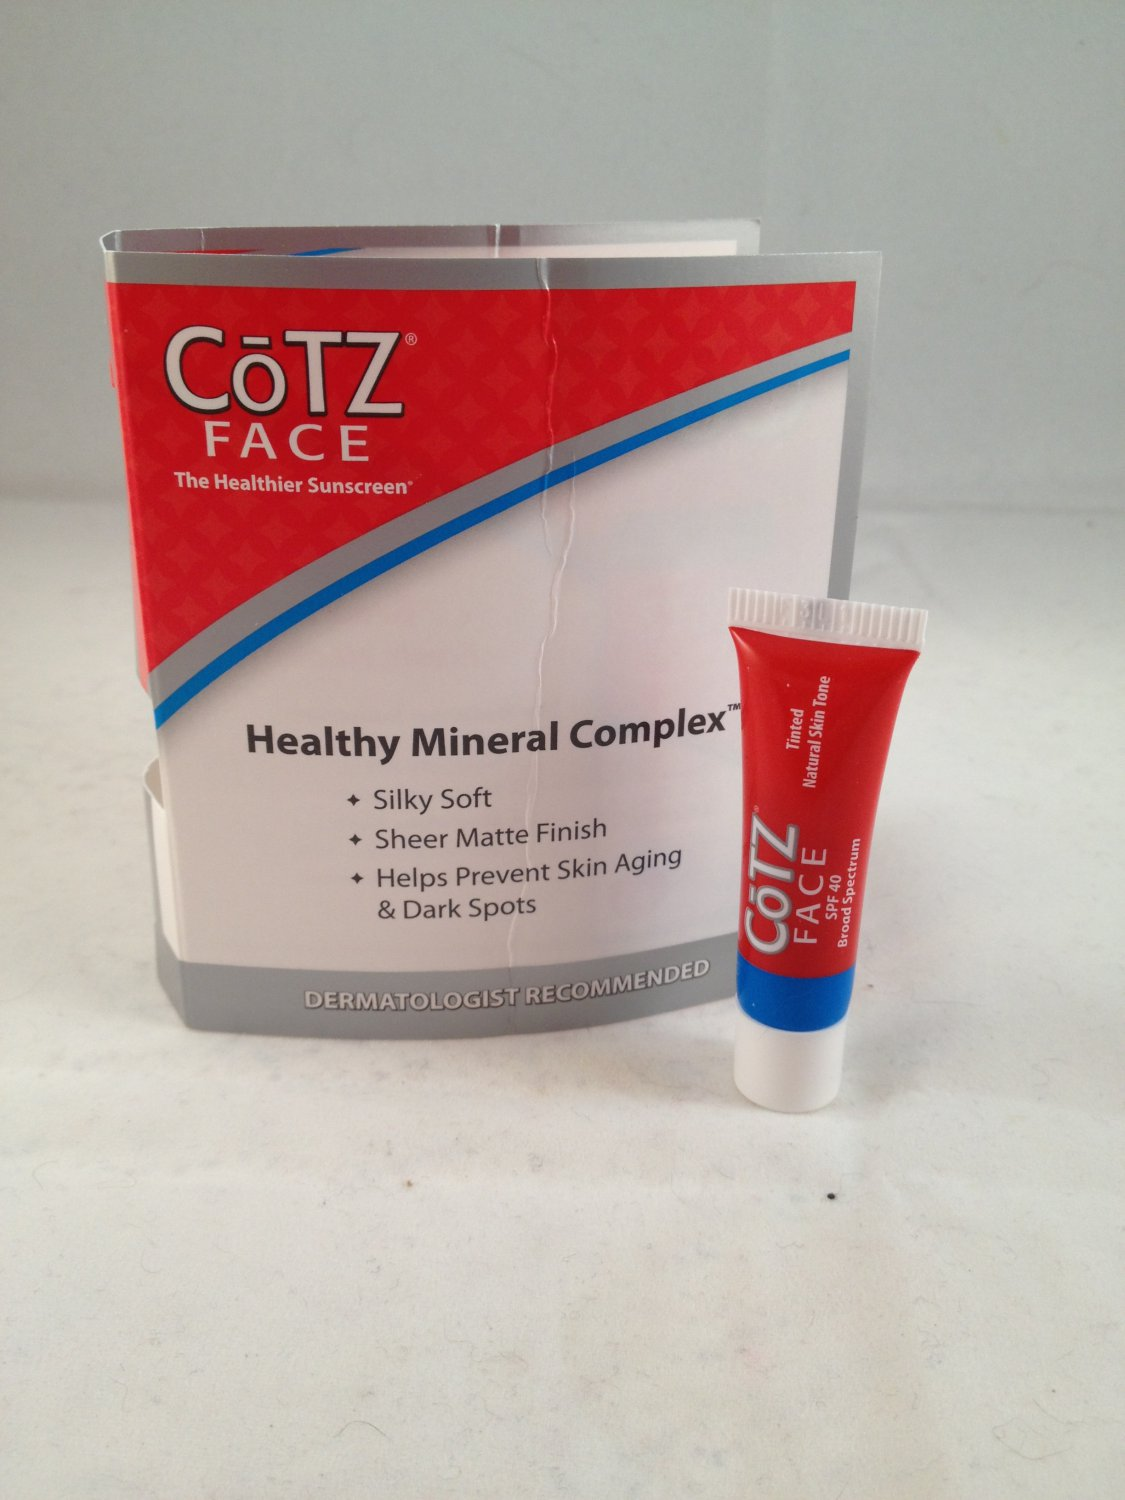 CoTz Face Healthy Mineral Complex Natural Skin Tone tinted sunscreen SPF 40 travel size